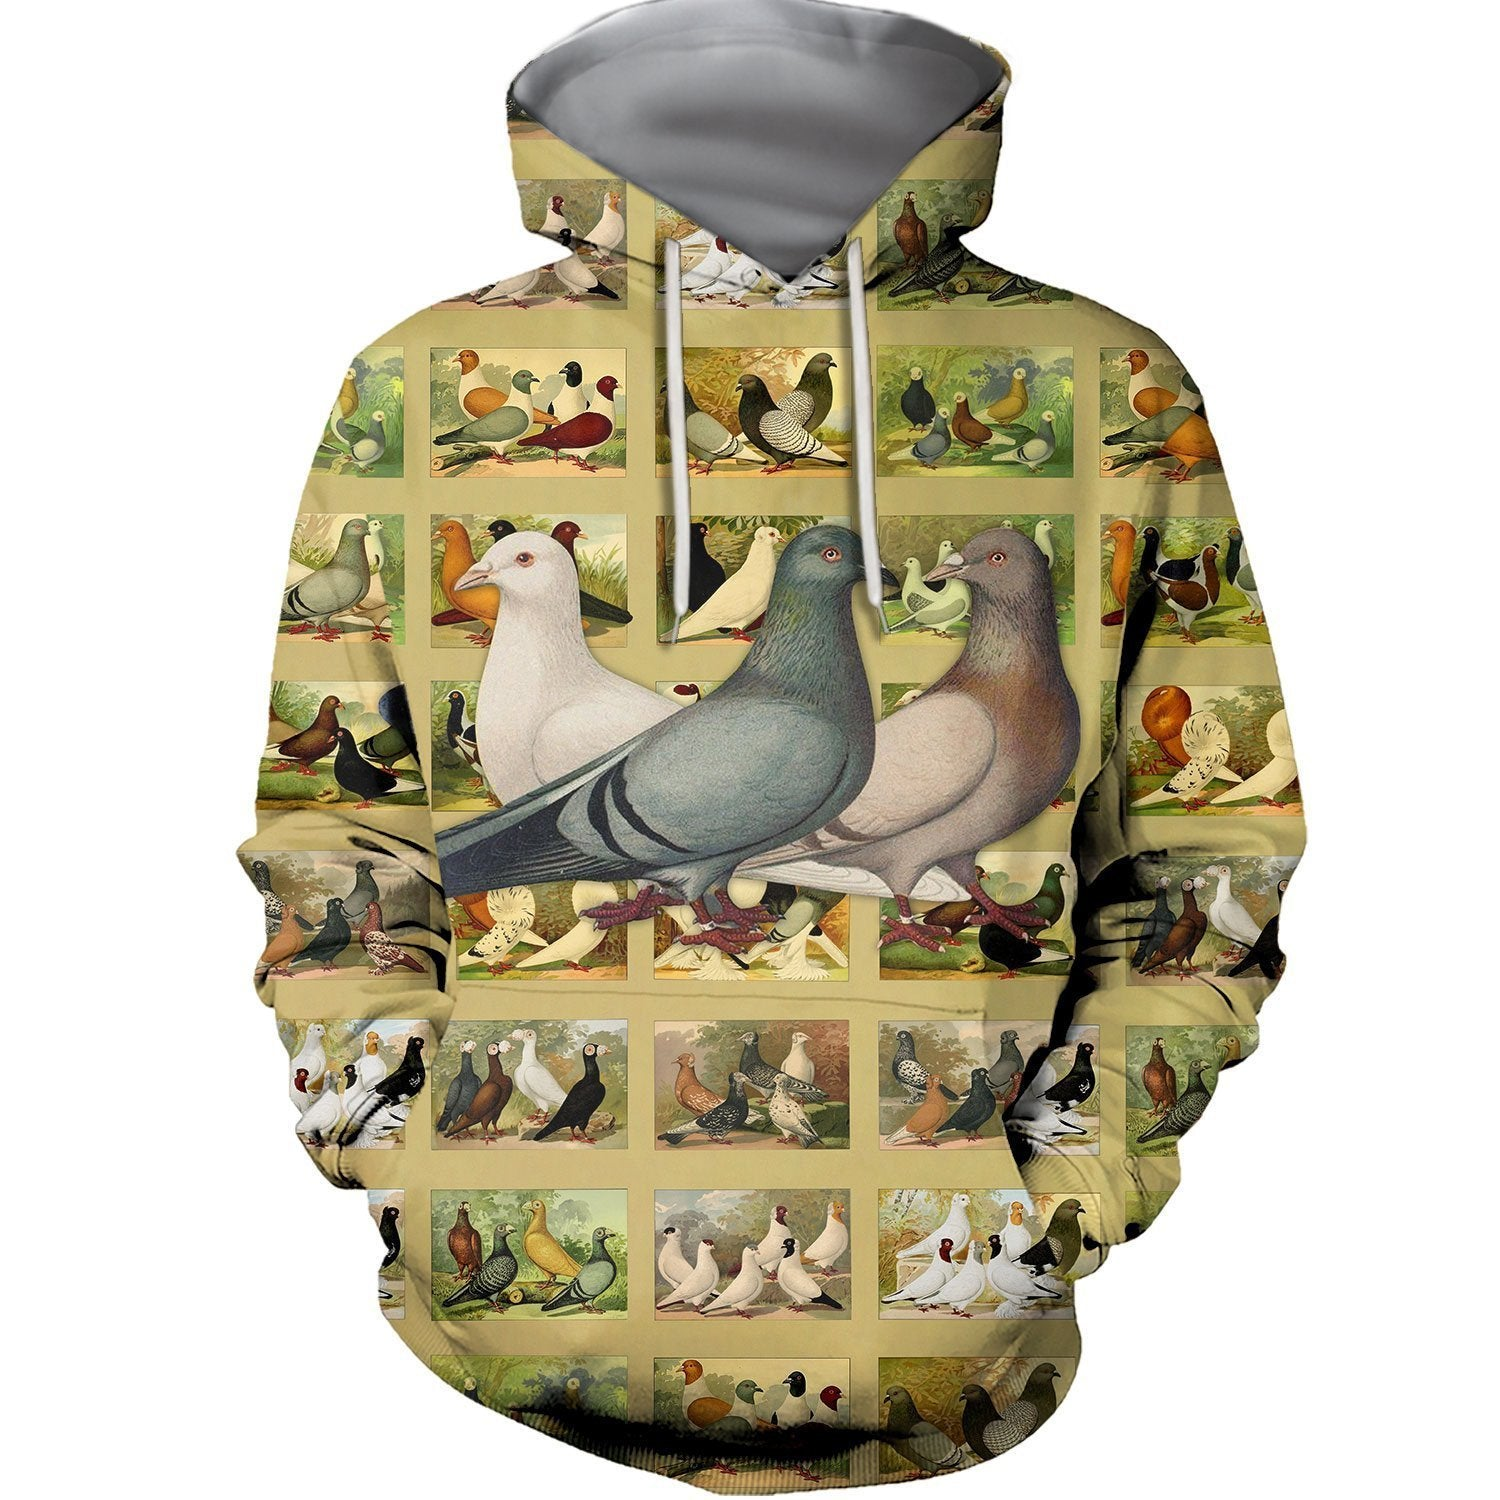 3D All Over Printed Beautiful Dove Hoodie - Amaze Style™